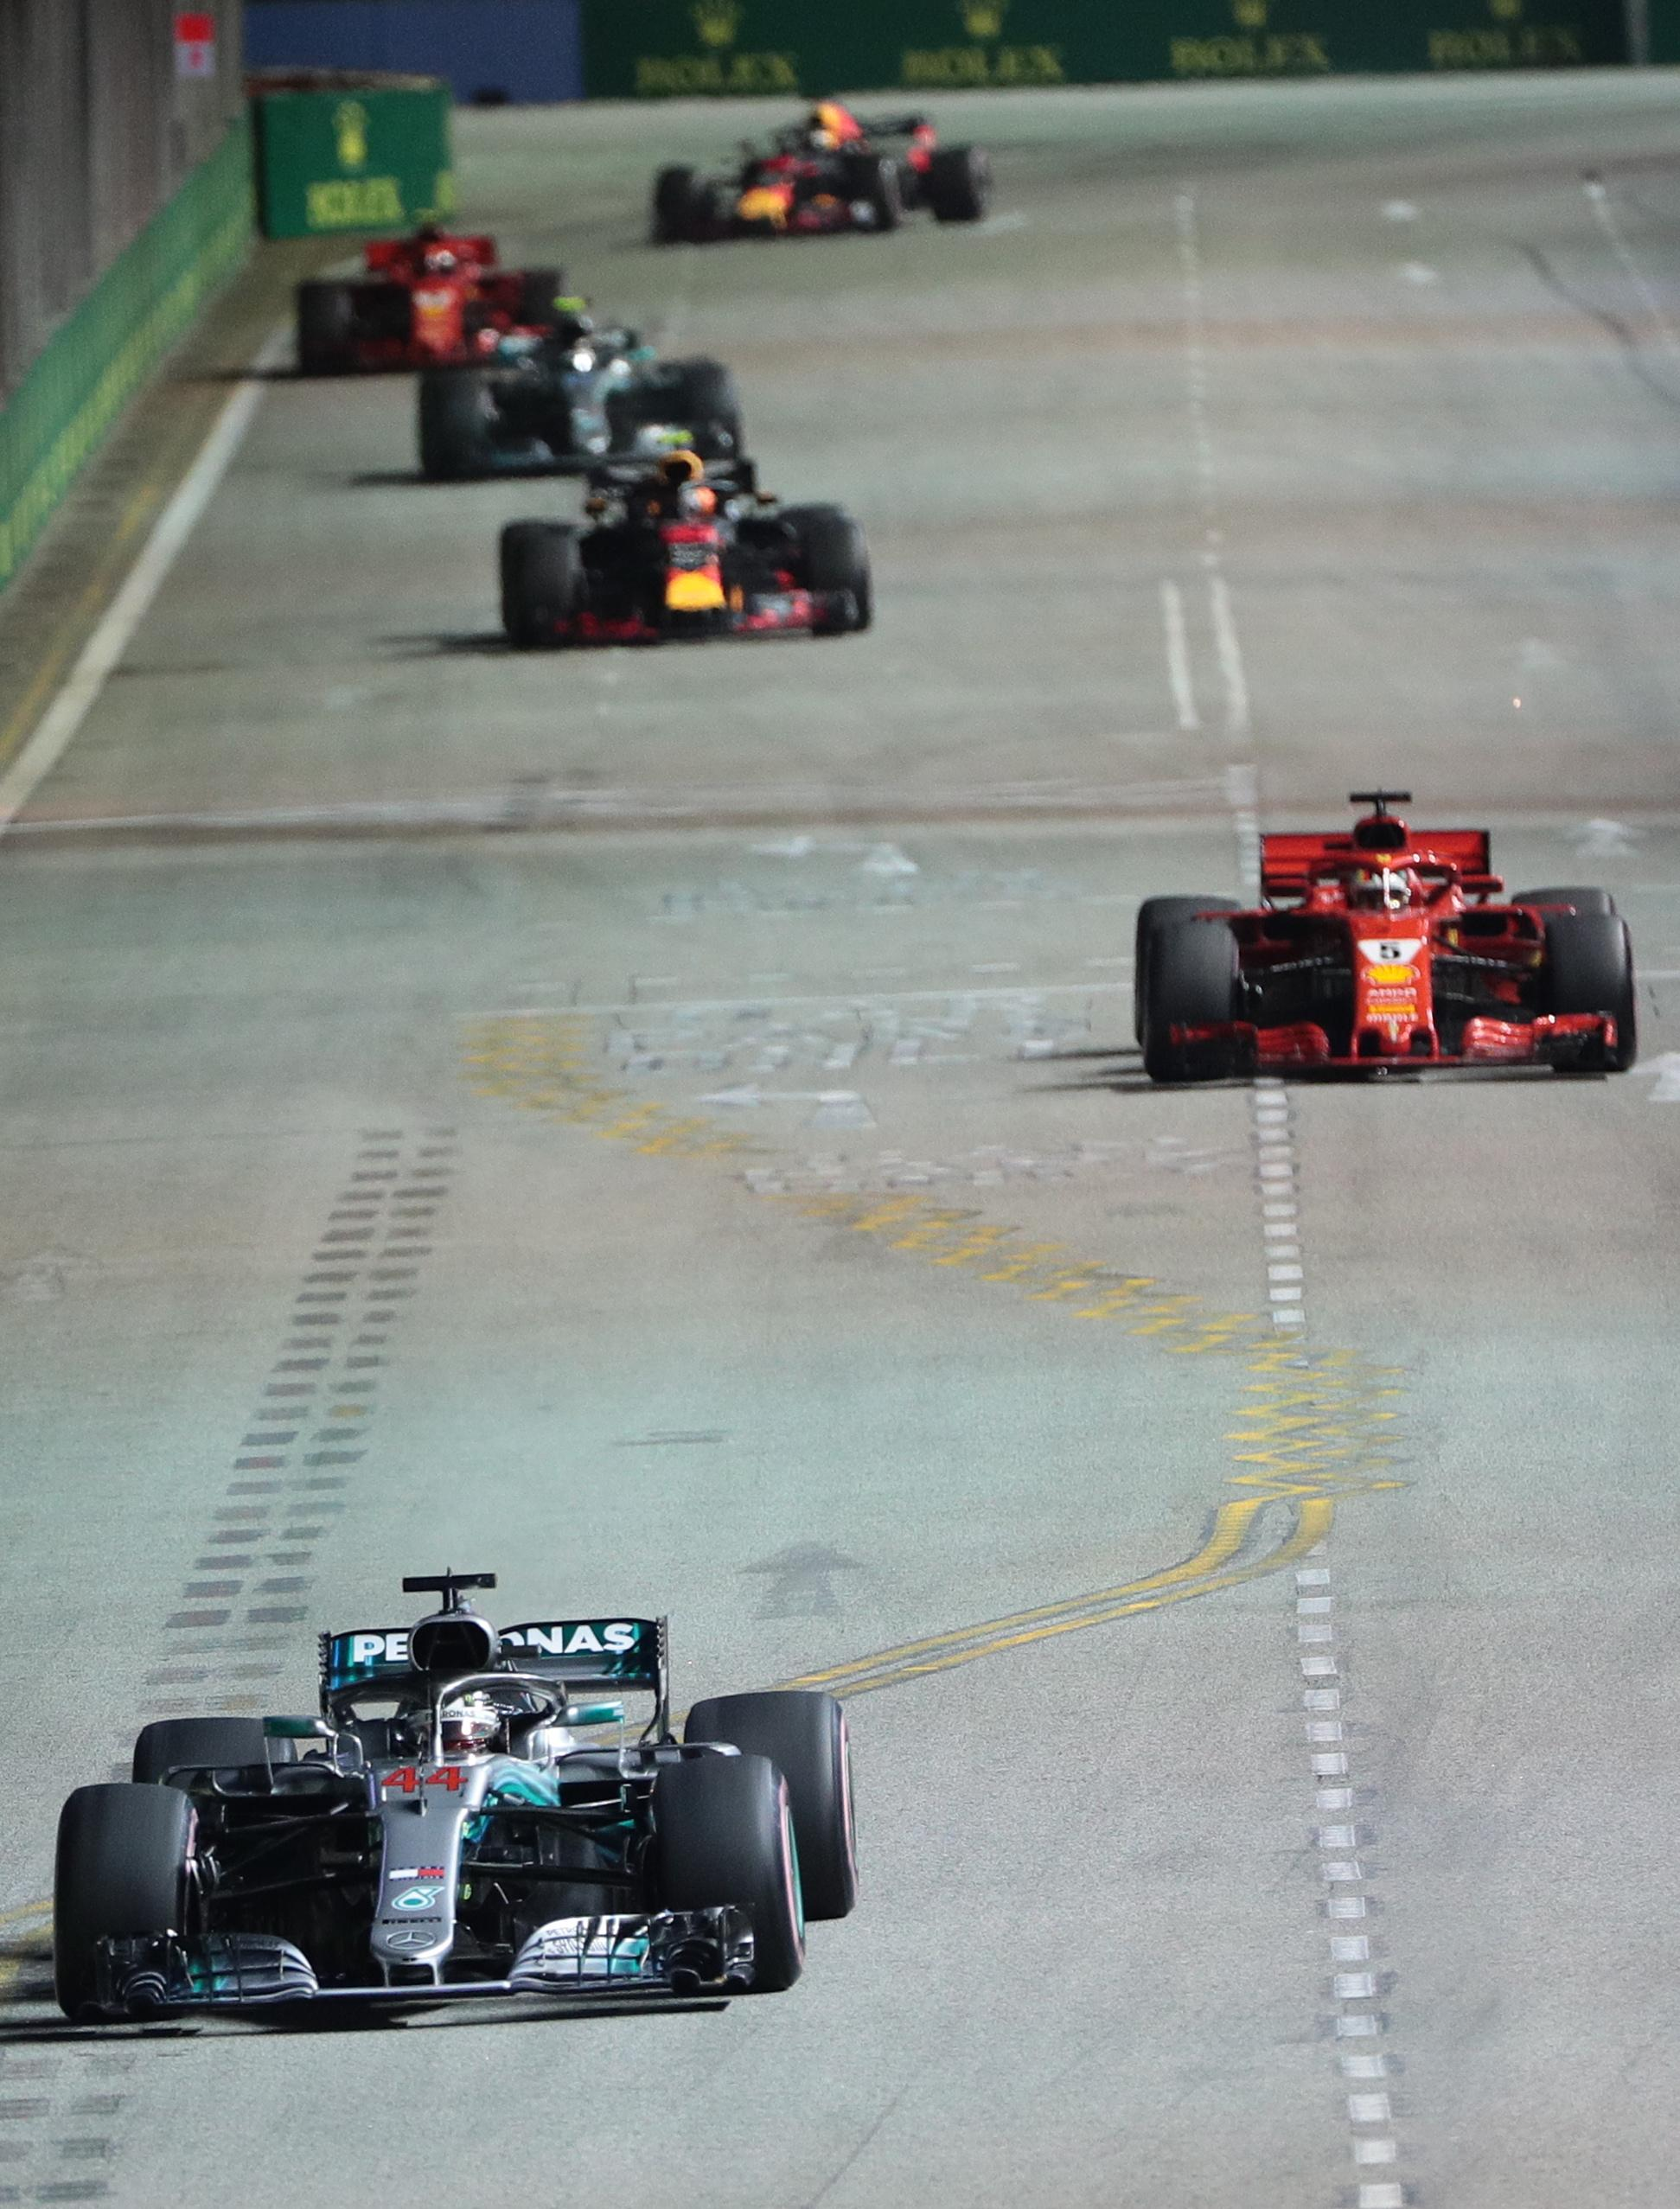 Lewis Hamilton dominated again, this time at the Singapore GP,  to leave himself perfectly placed to win his fifth F1 world championship